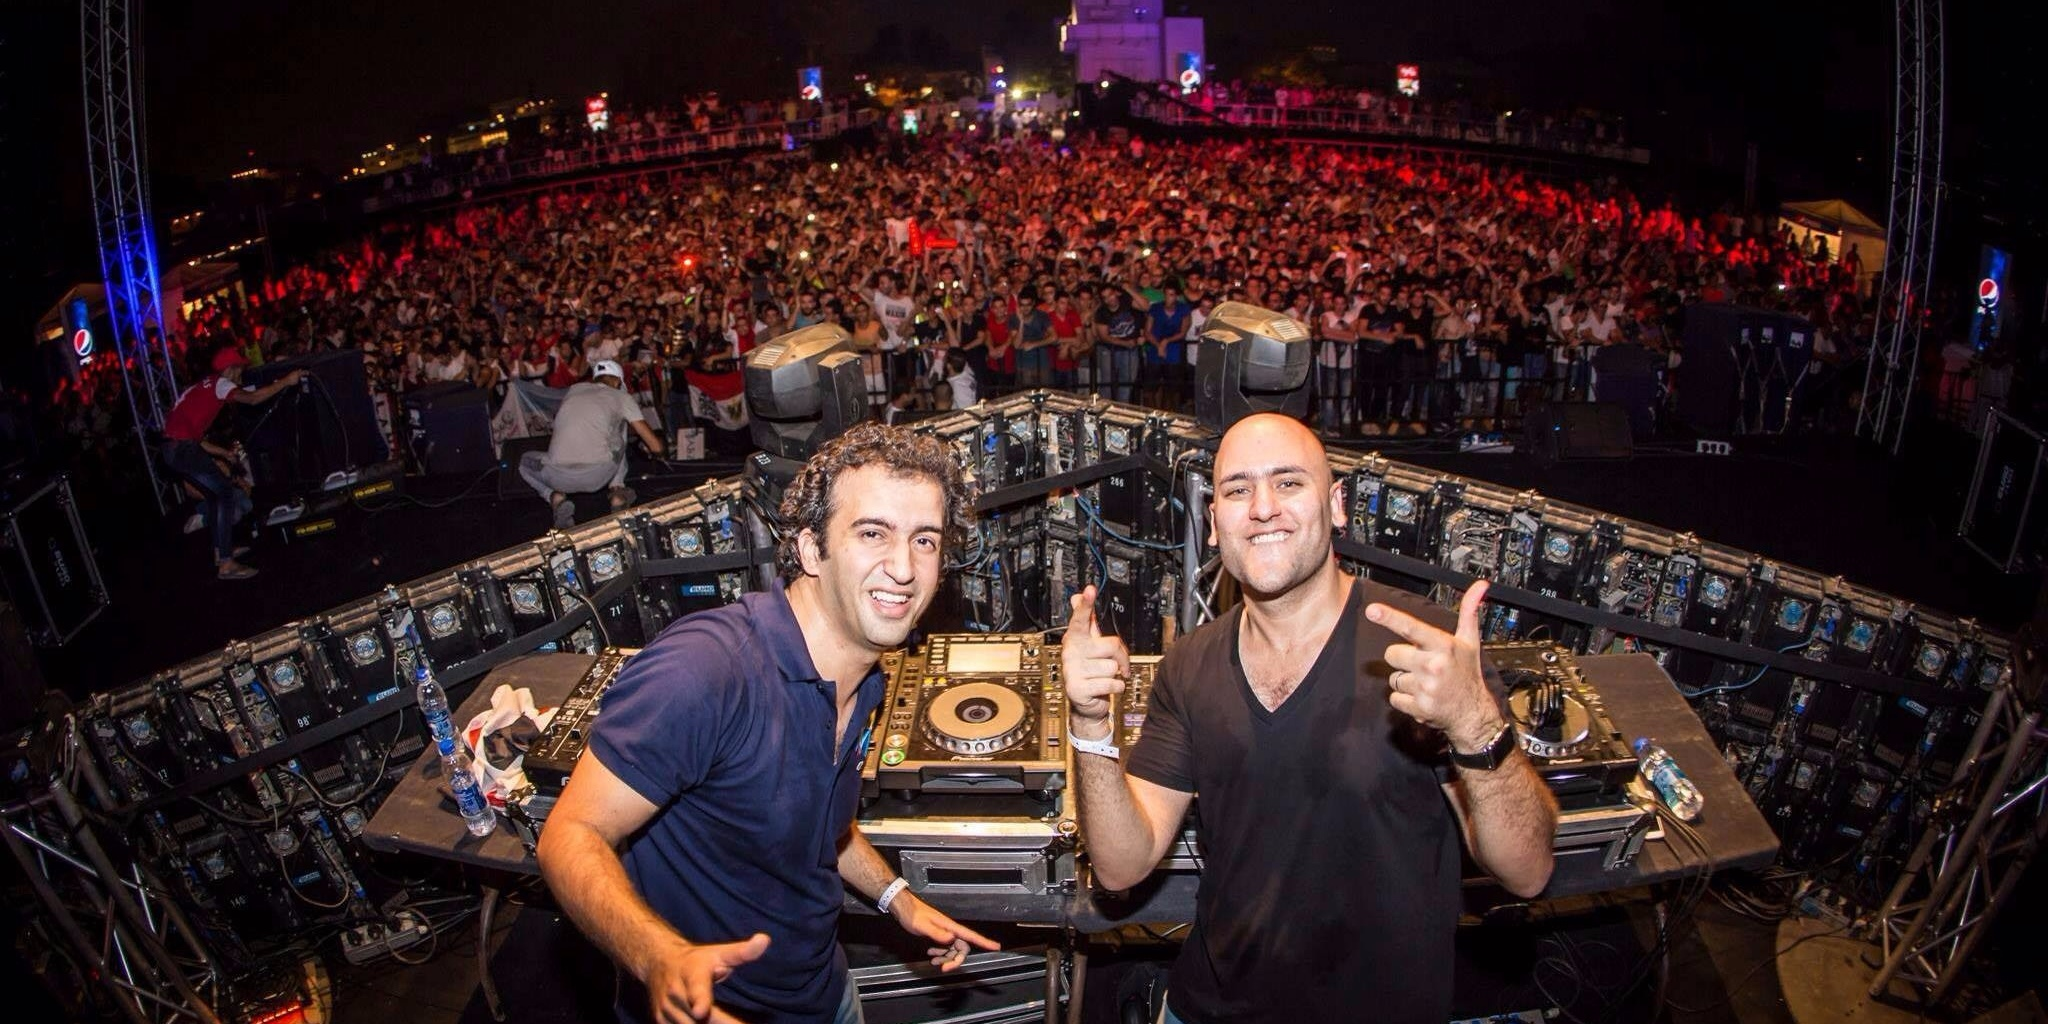 Trance DJs Aly & Fila are returning to Singapore this December